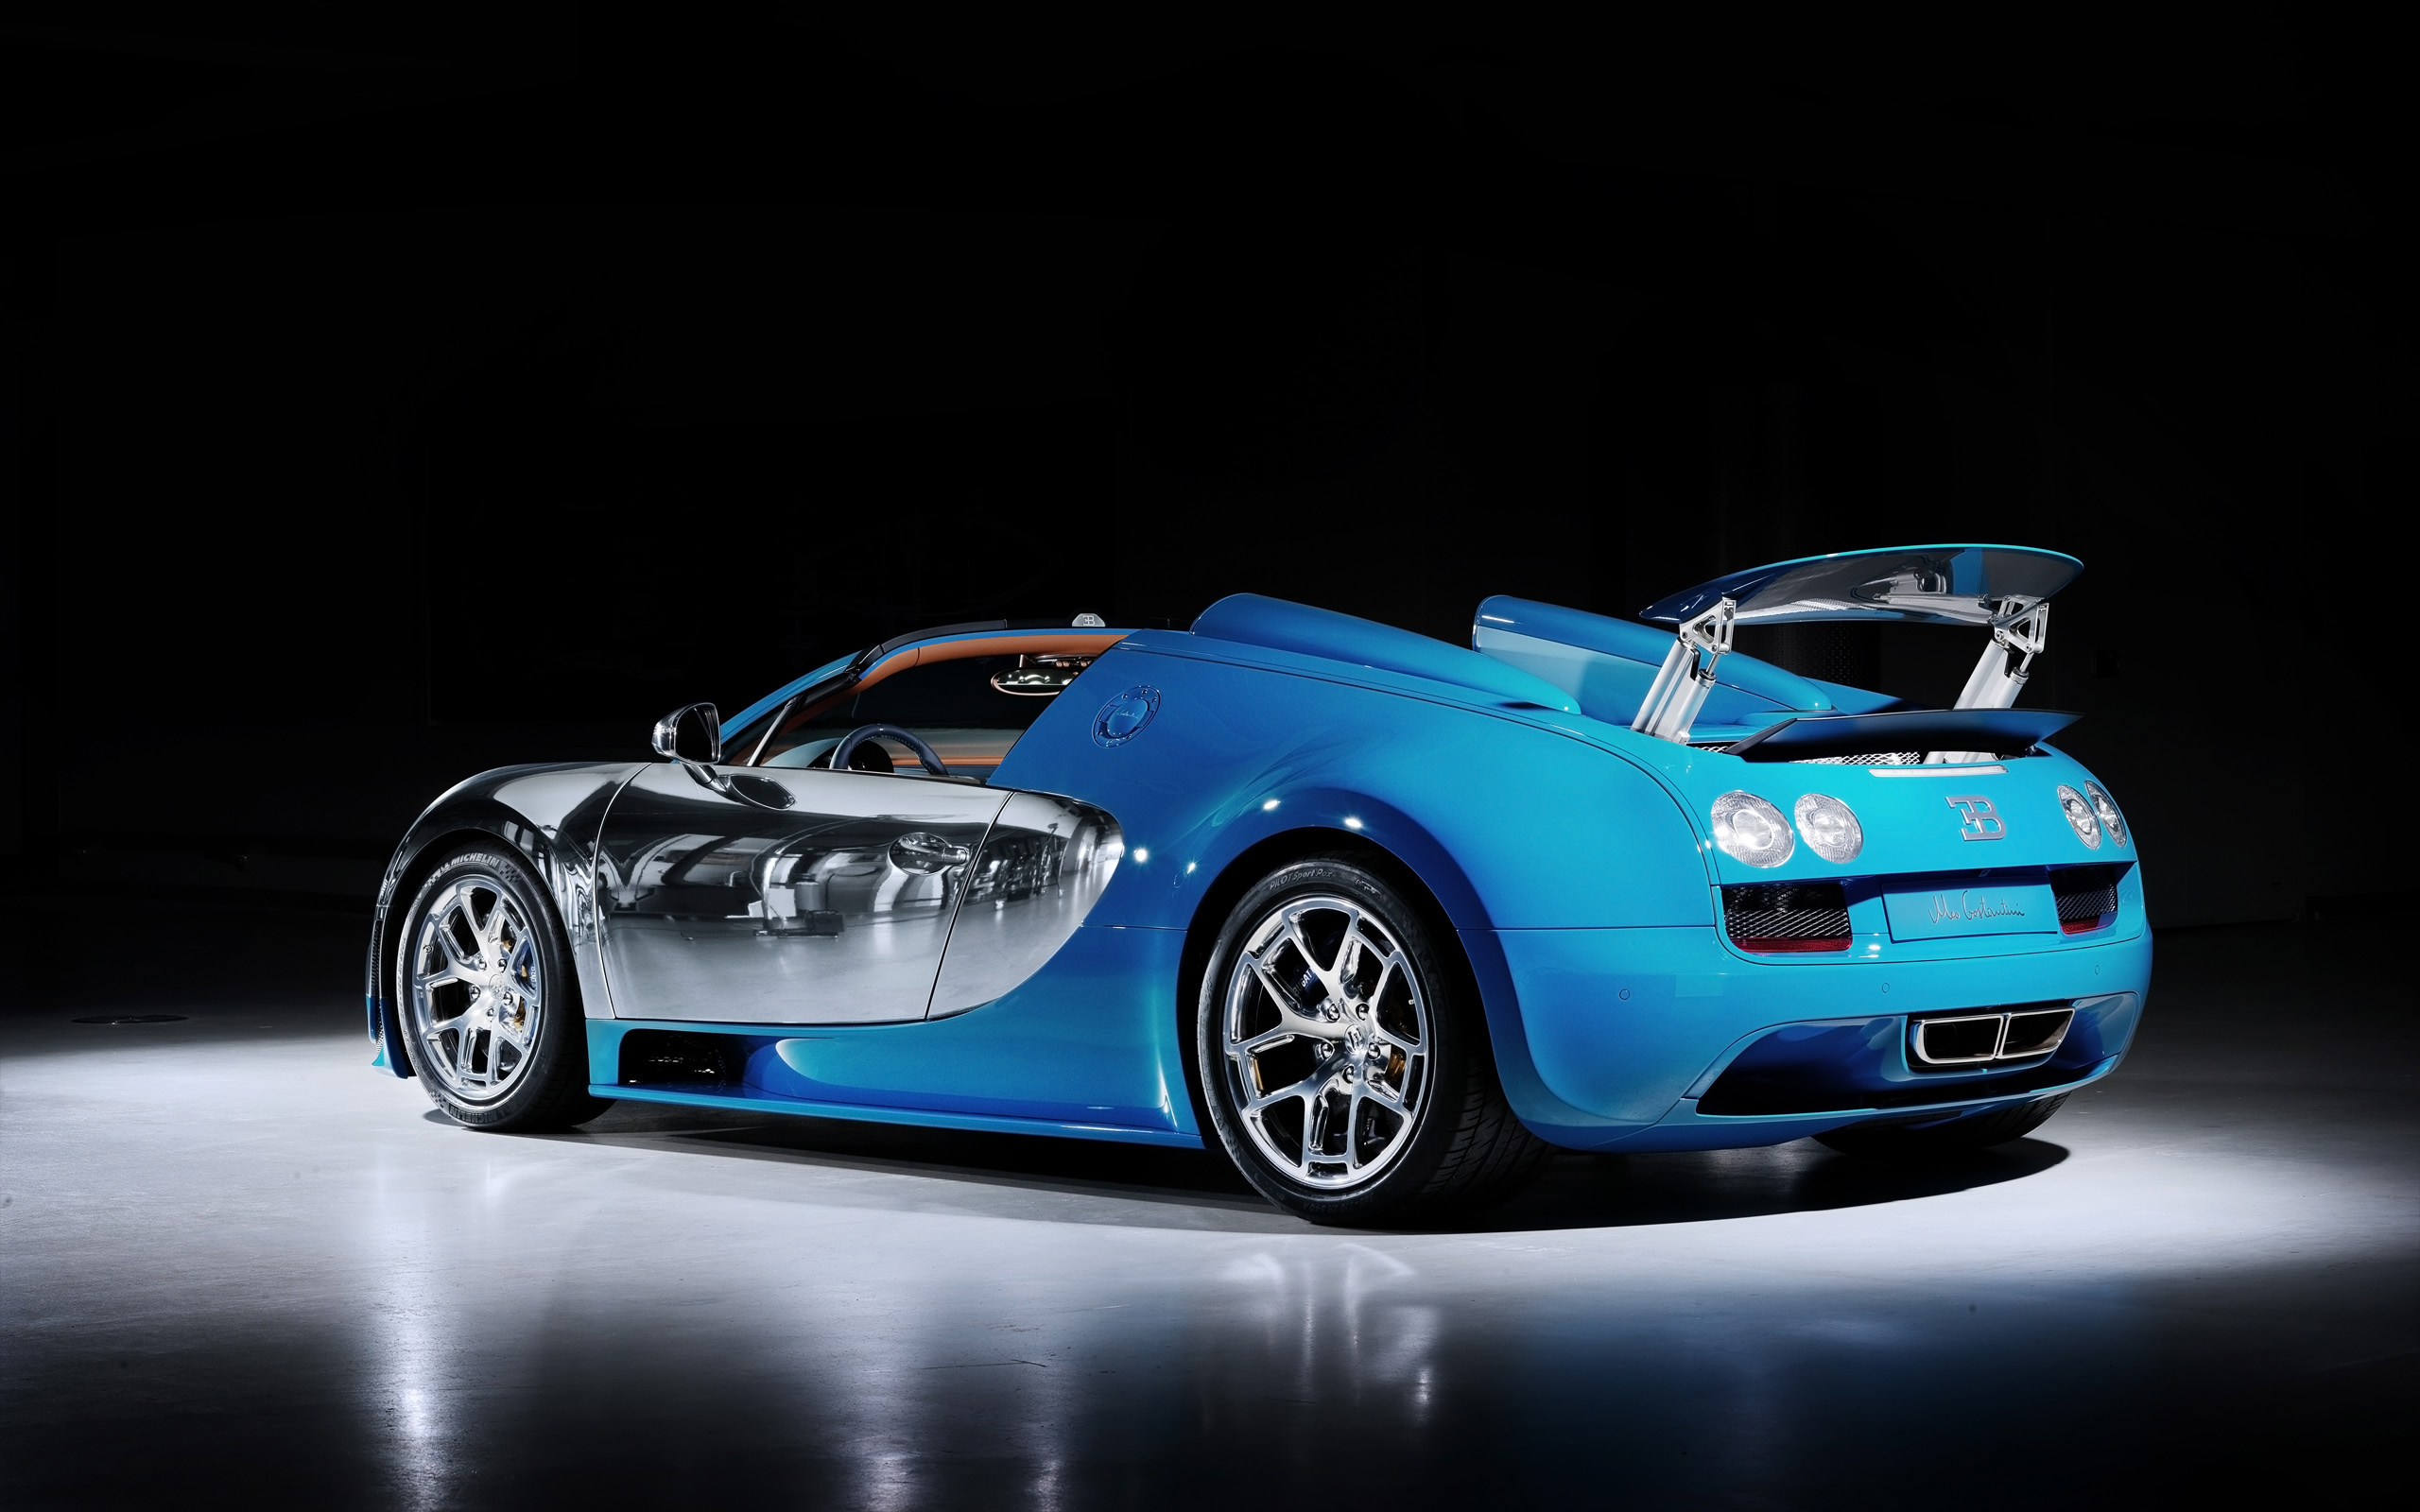 2013 bugatti veyron grand sport vitesse legend meo costantini 2 wallpaper hd car wallpapers. Black Bedroom Furniture Sets. Home Design Ideas